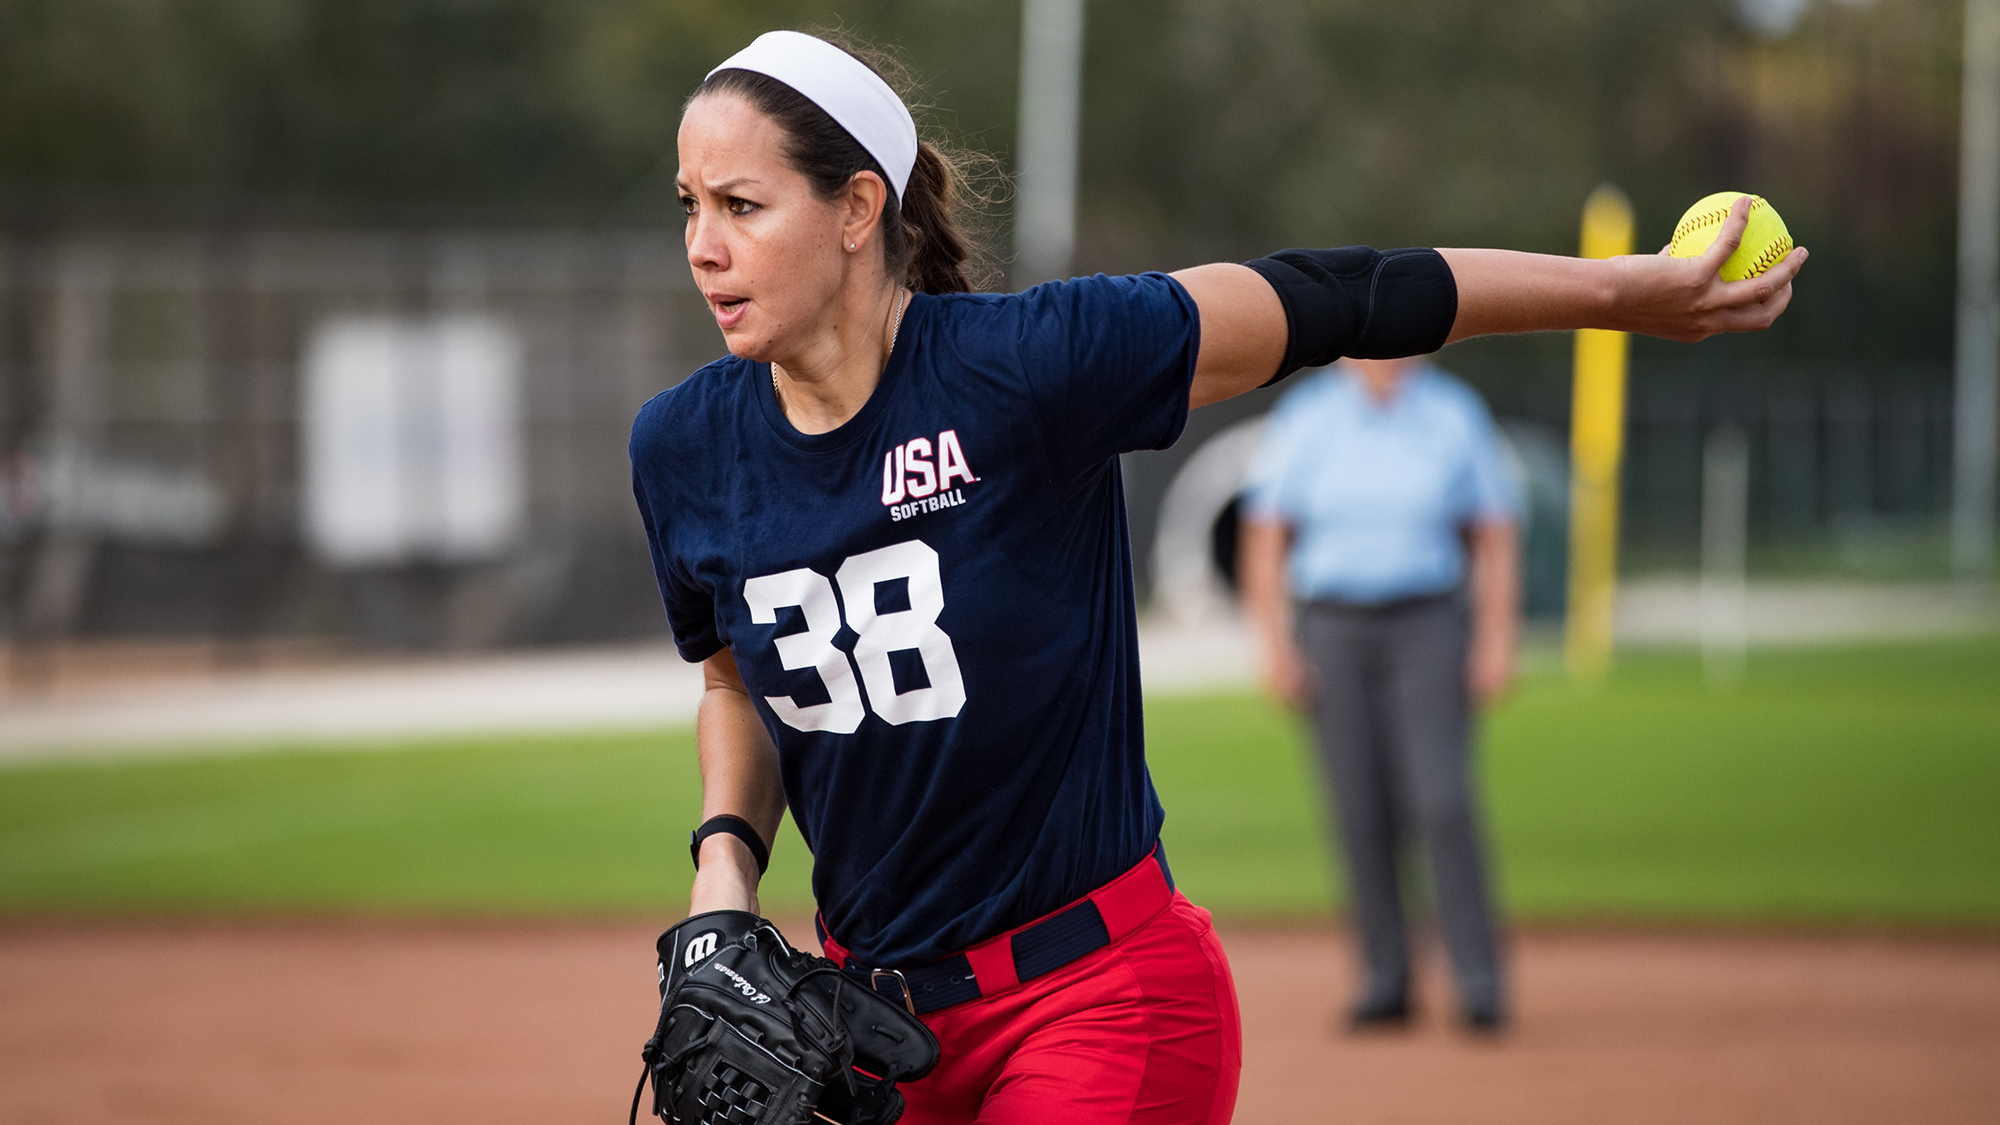 Texas-Ex Cat Osterman selected to 2019 USA Softball National